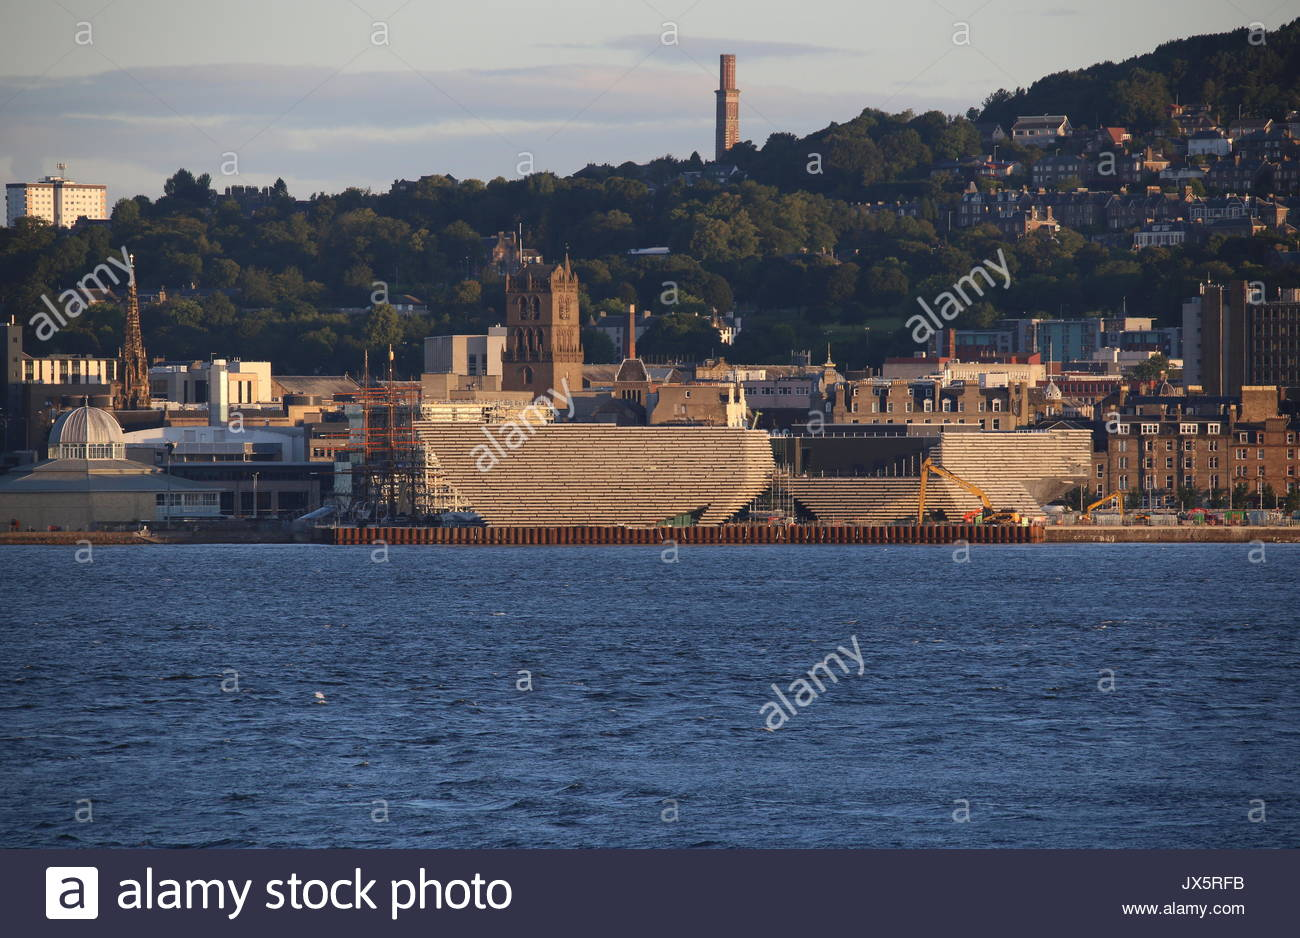 V & A Design Museum with cofferdam and Cox's Stack Dundee Scotland  August 2017 - Stock Image